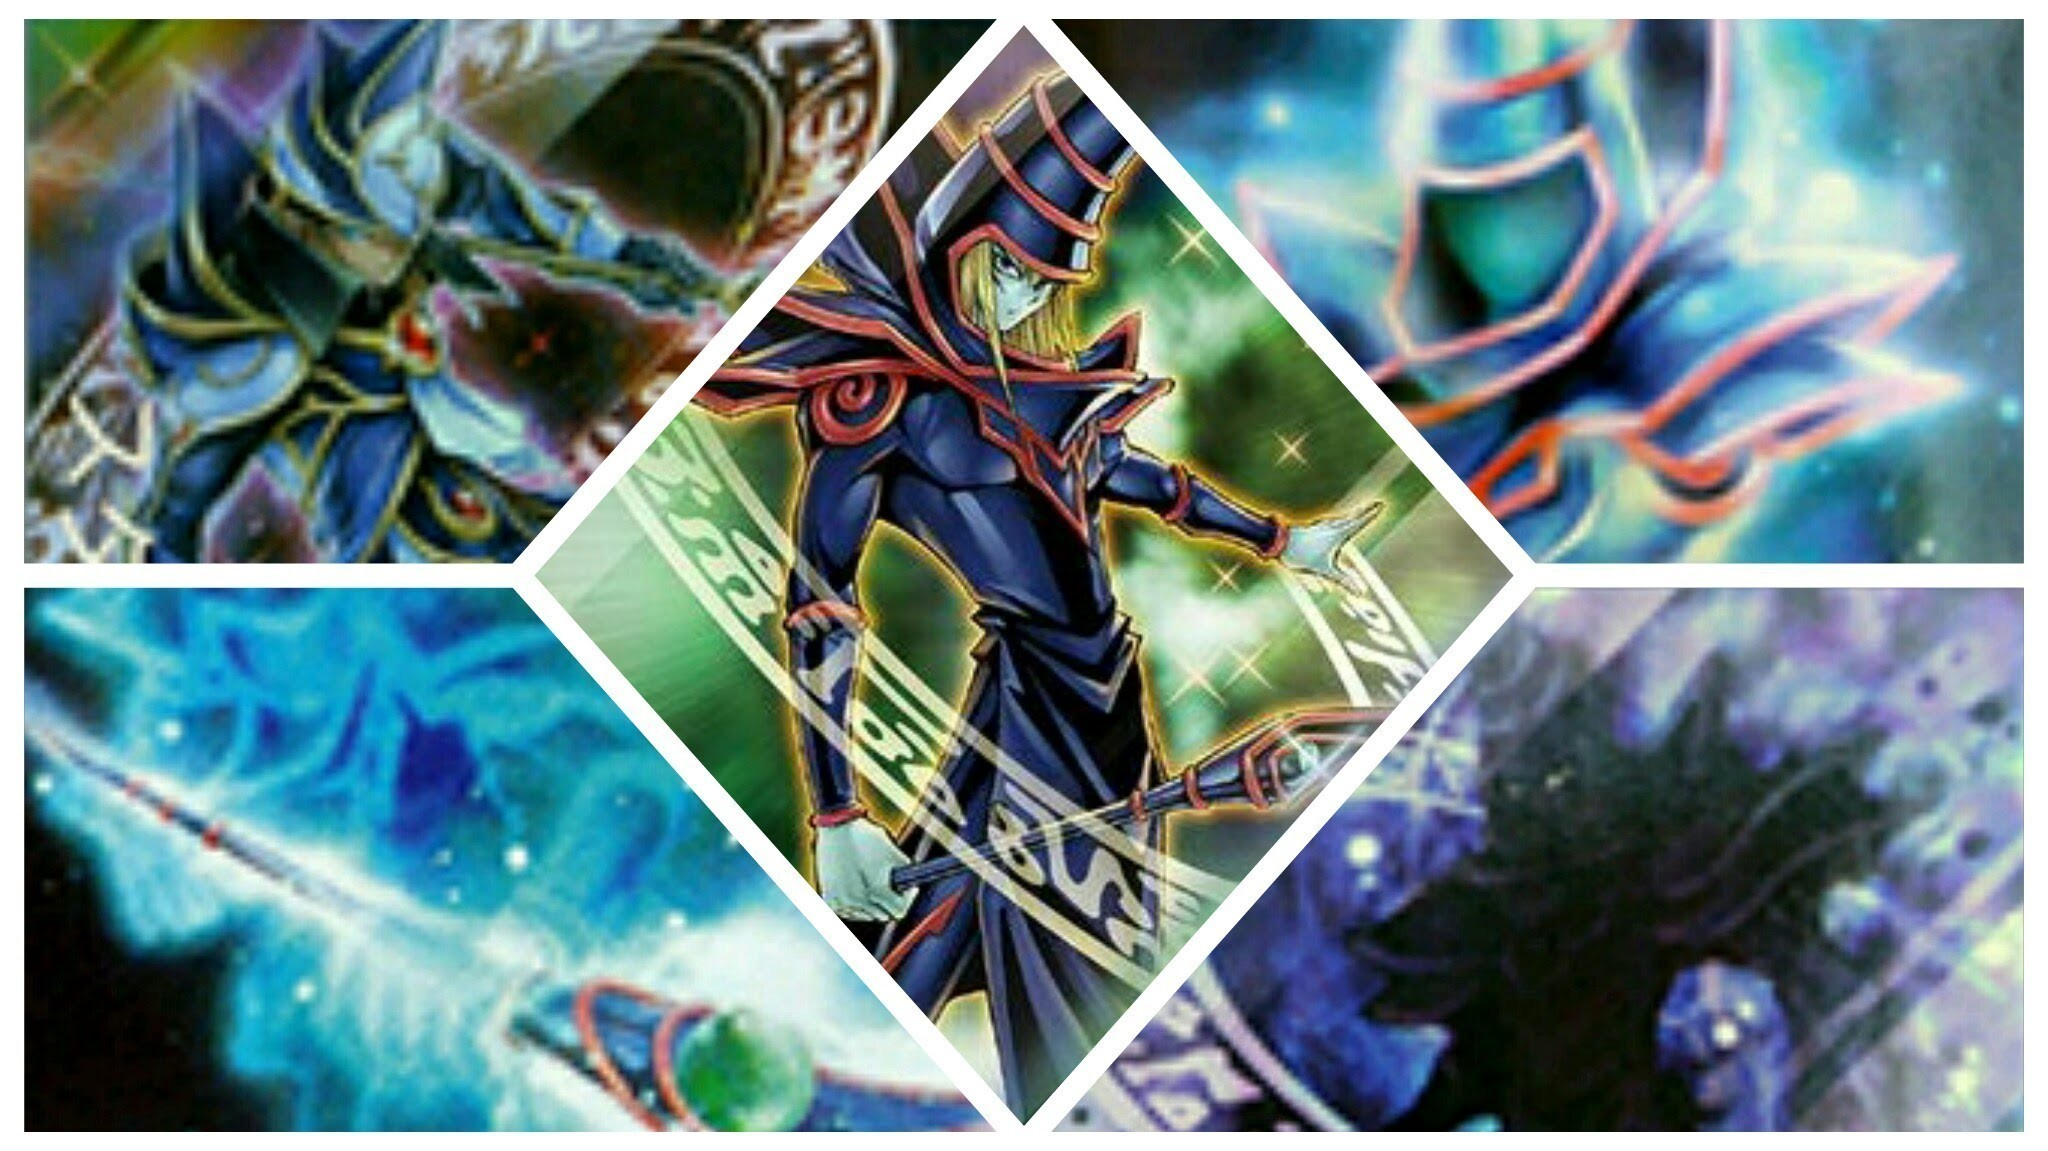 2048x1151 1920x1200 Yugioh Wallpapers - Full HD wallpaper search